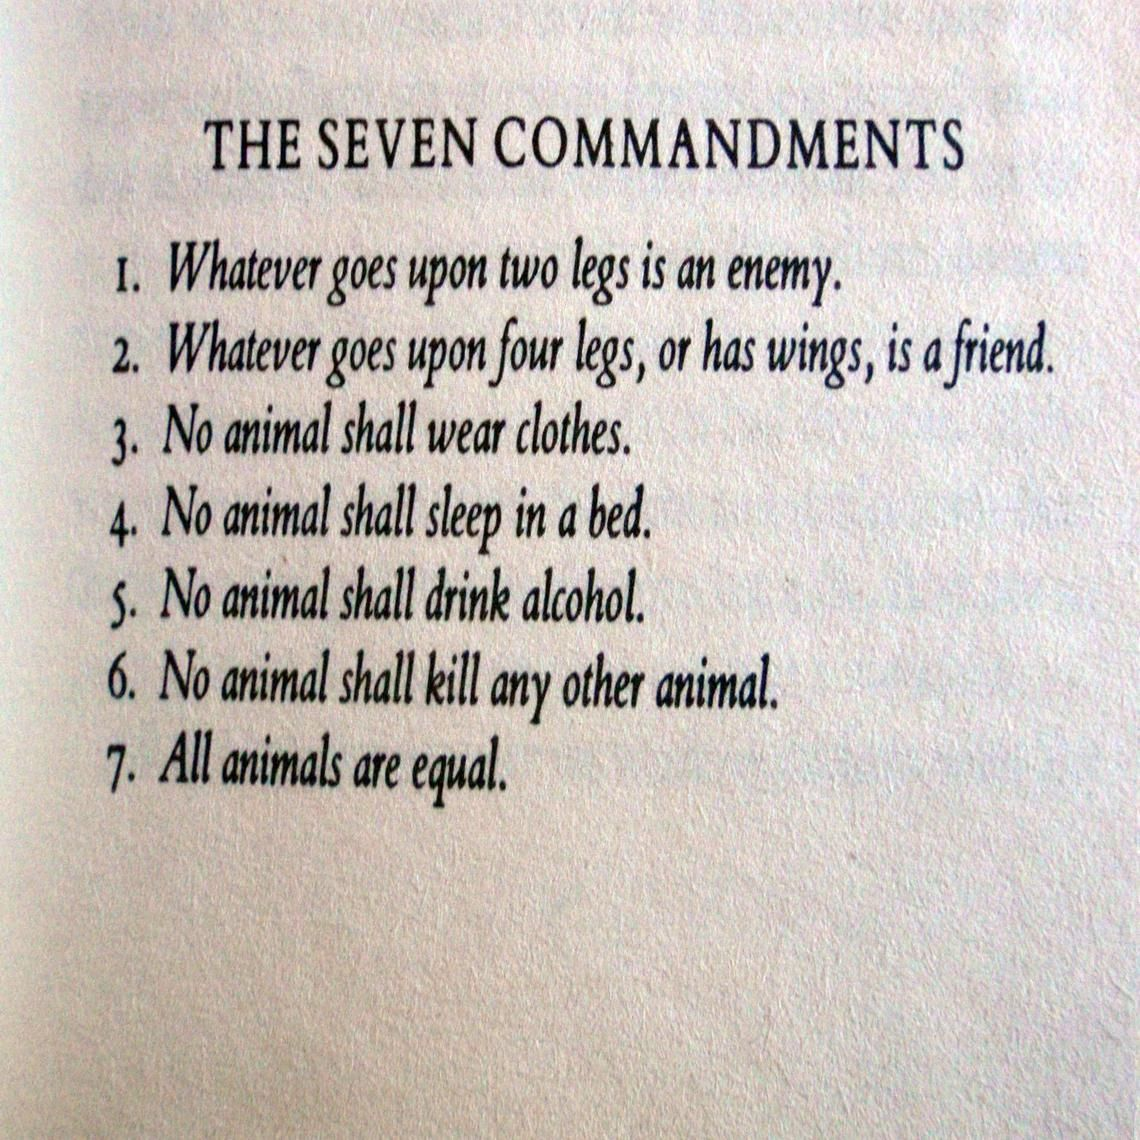 Animal Farm Quotes Week 1921George Orwell's Animal Farm The 7 Commandments